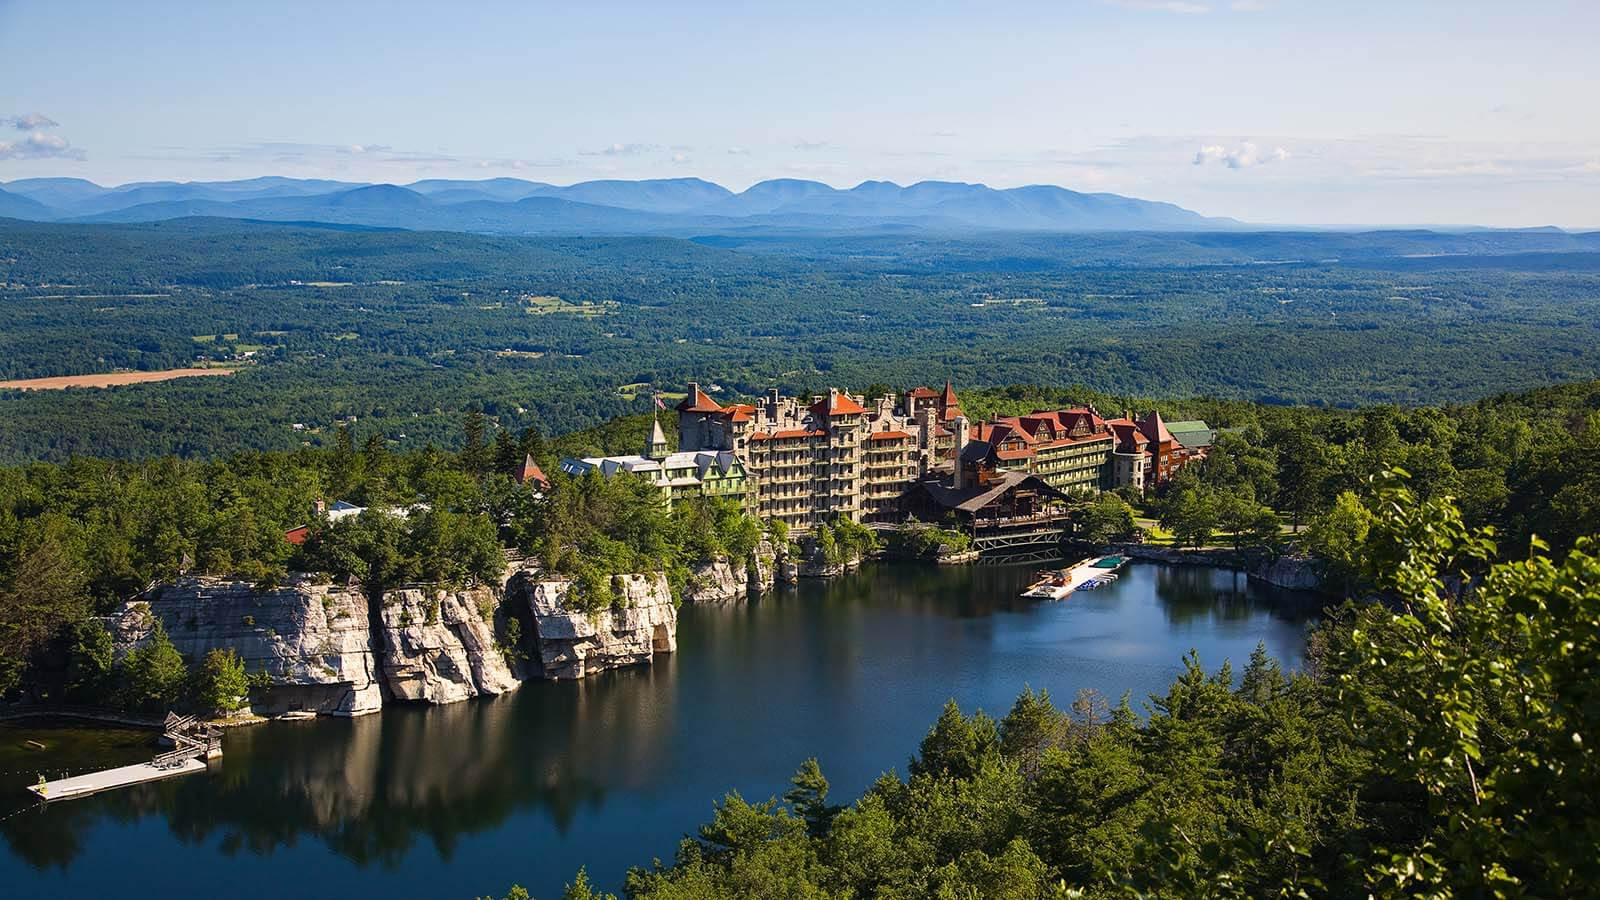 Daytime exterior of Mohonk Mountain House in New Paltz, New York.